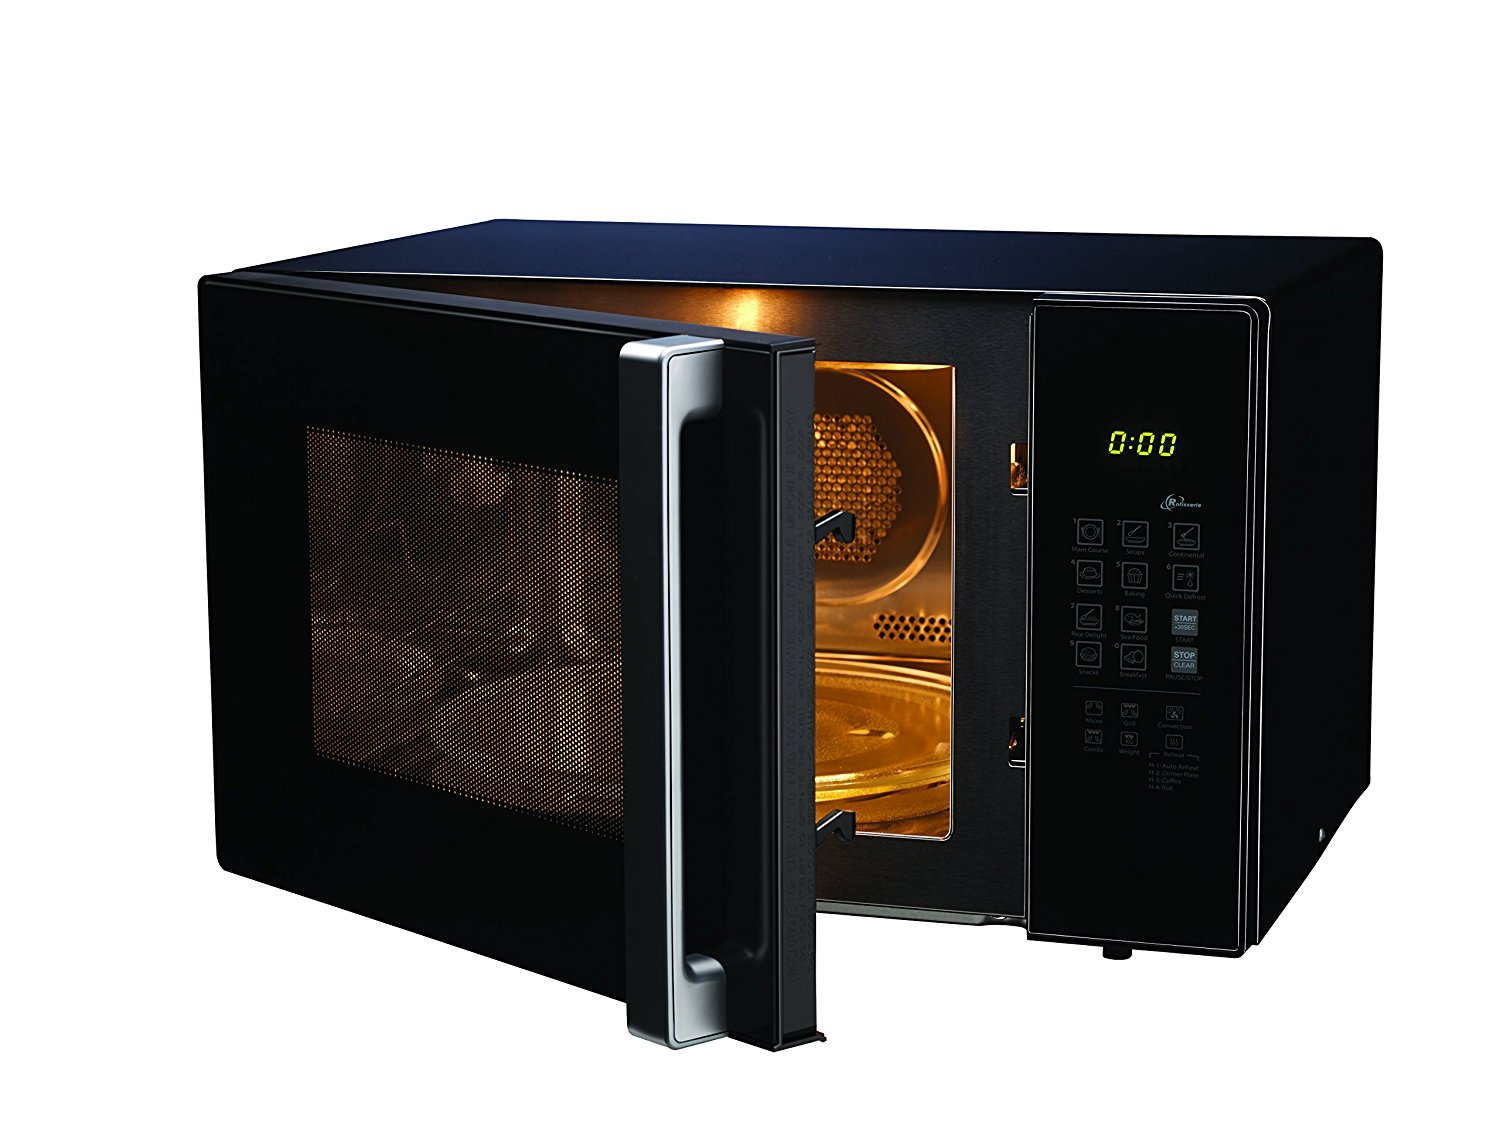 Morphy Richards Microwave Oven 30 Liters